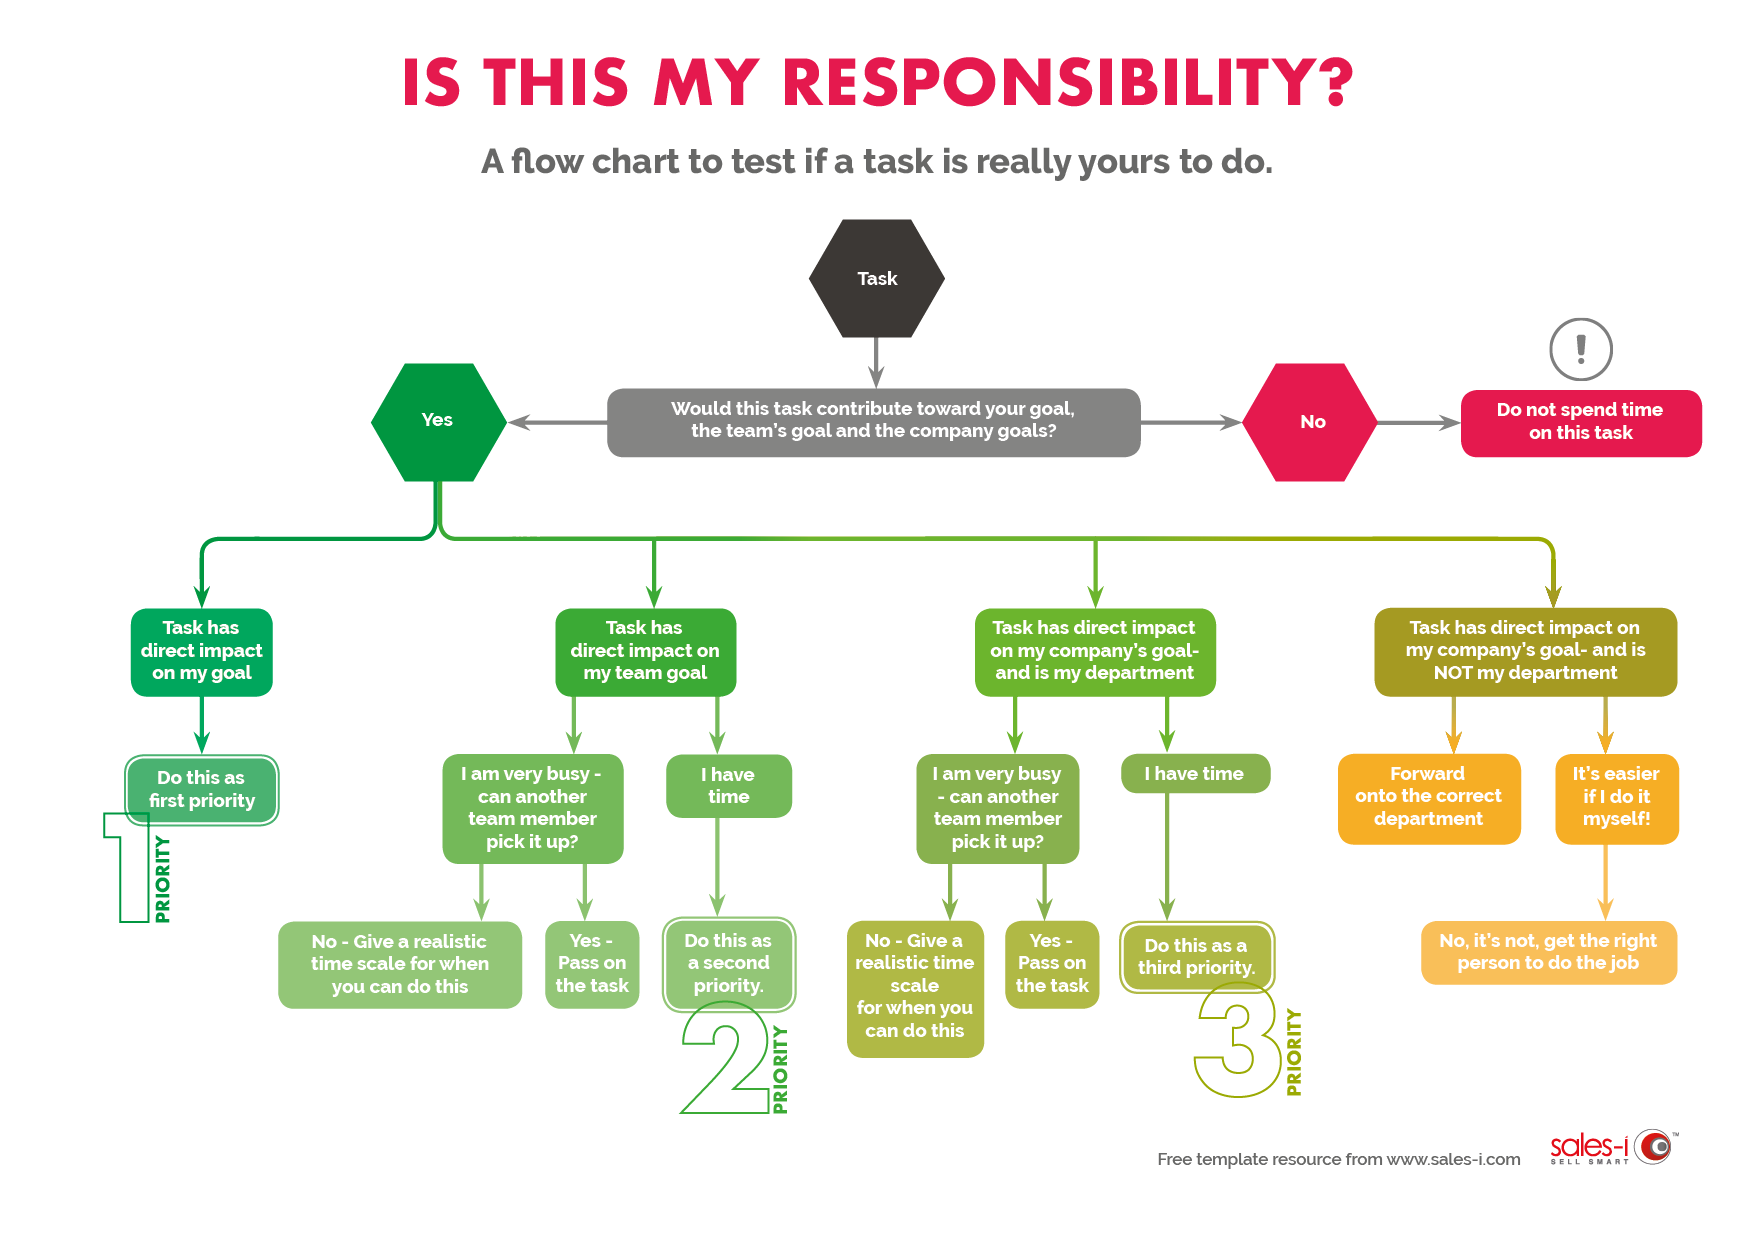 My-responsibility png